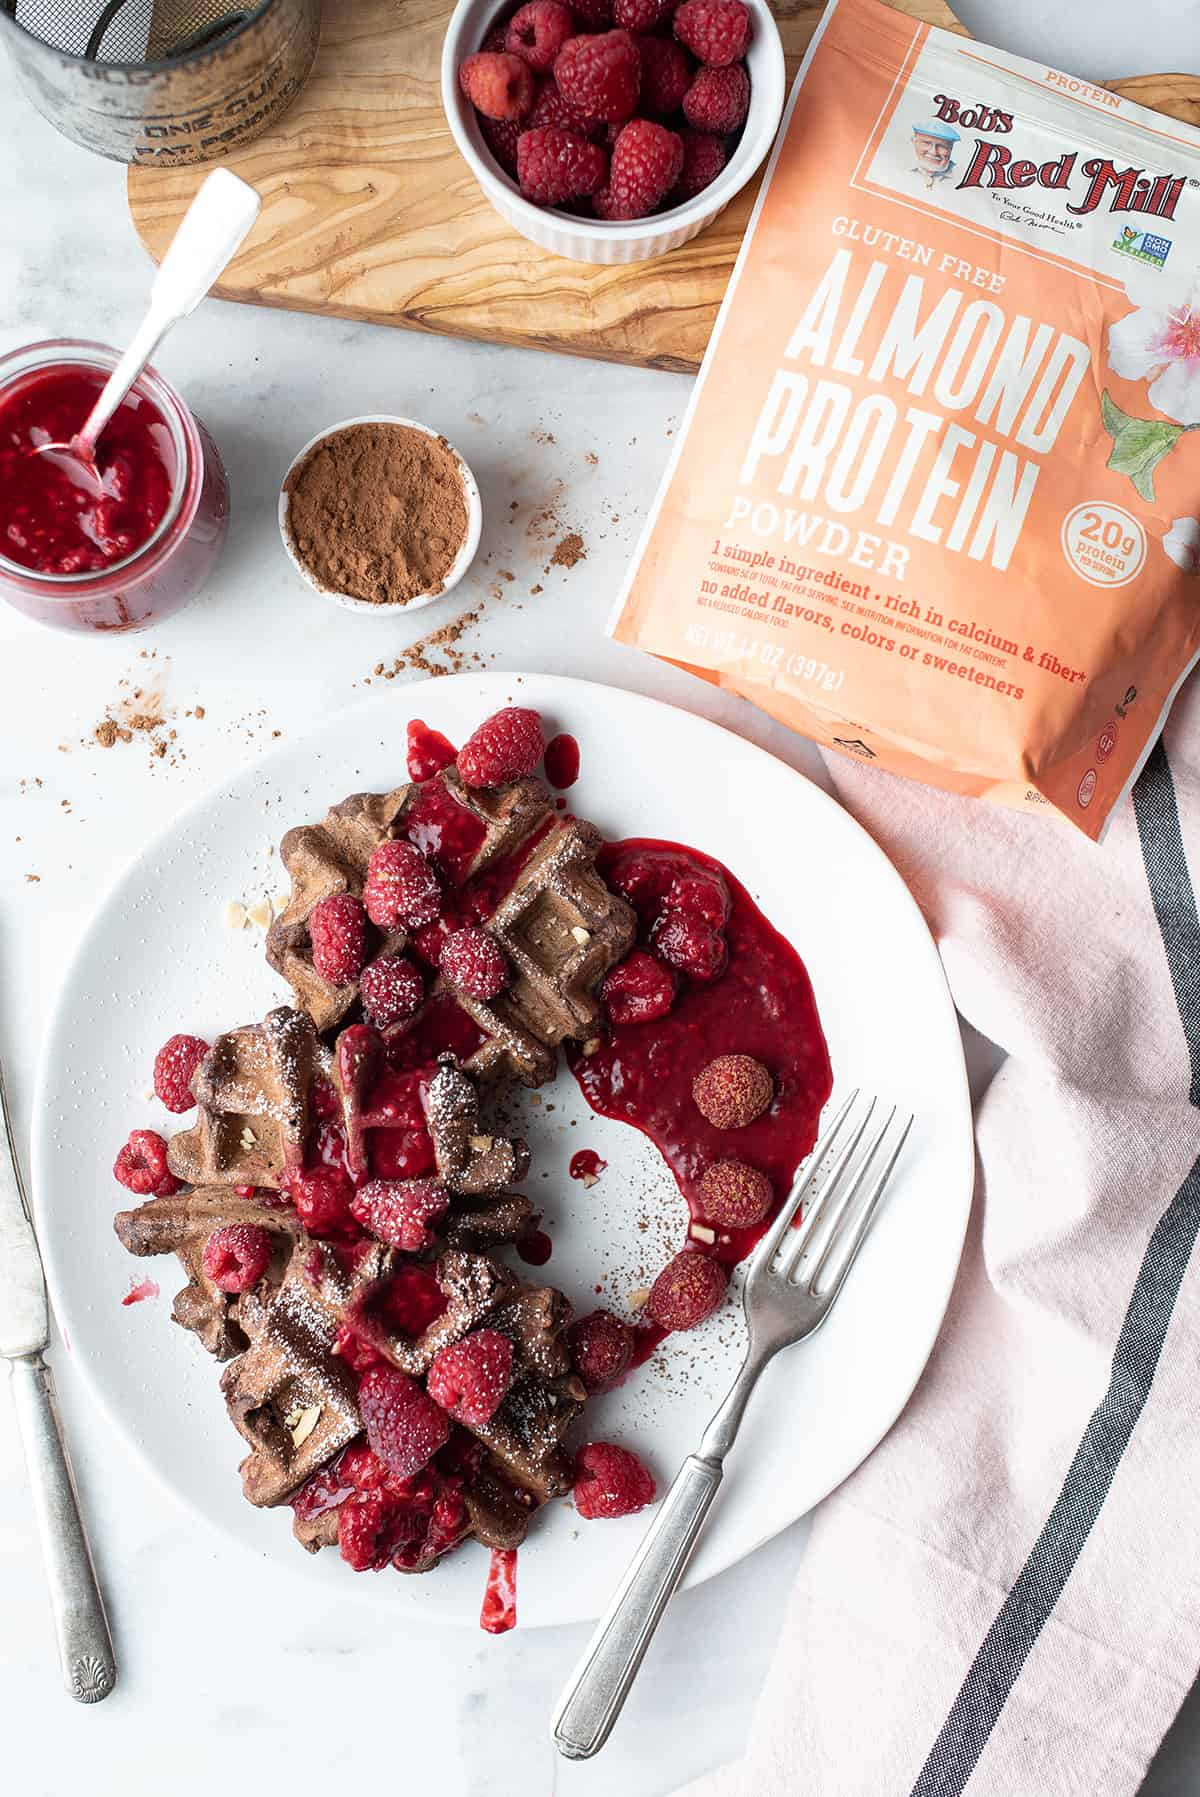 gluten-free chocolate waffles on plate, drizzled with raspberry sauce